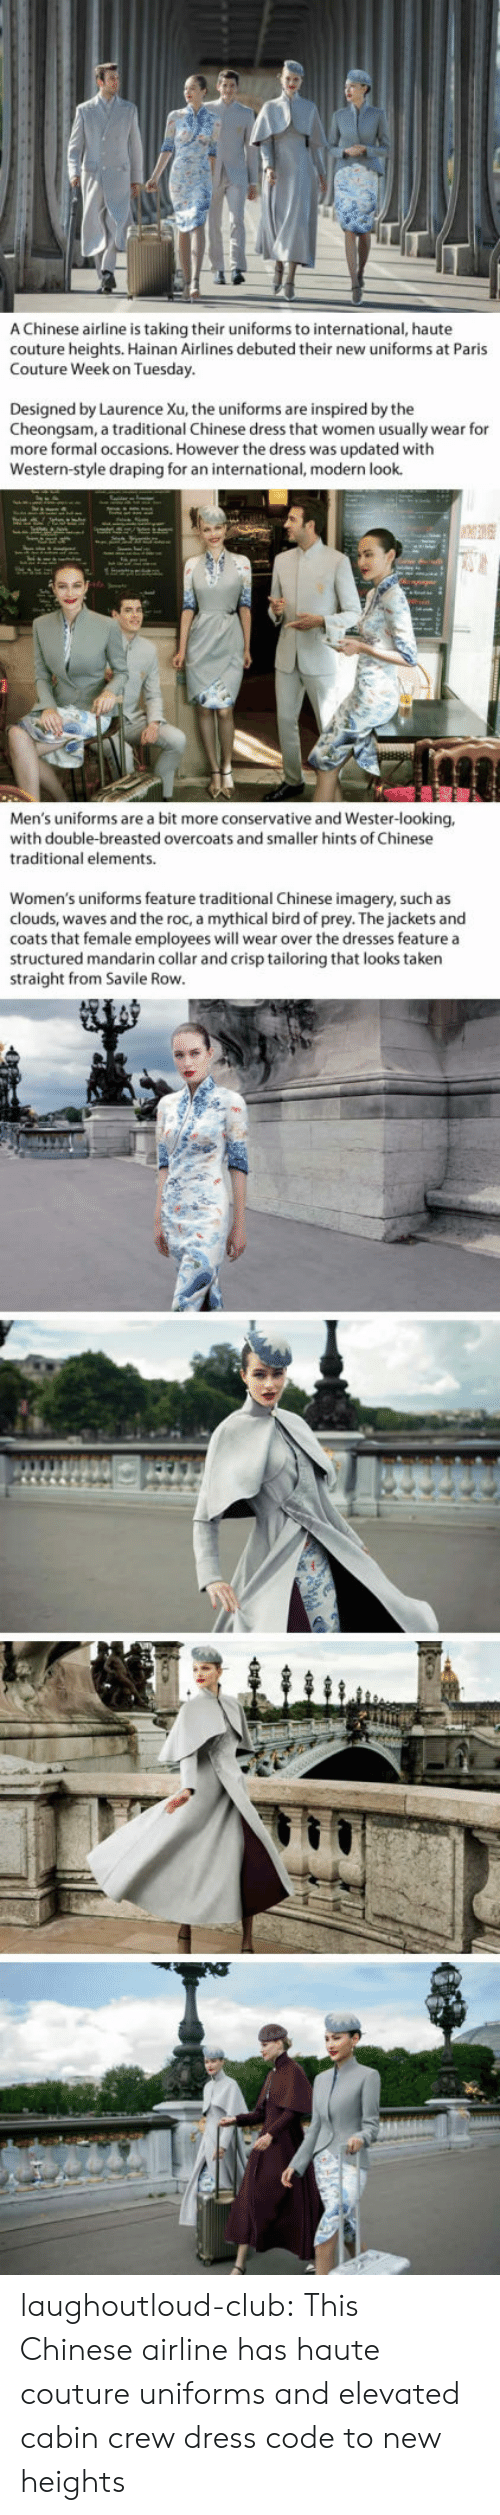 Cabin Crew: A Chinese airline is taking their uniforms to international, haute  couture heights. Hainan Airlines debuted their new uniforms at Paris  Couture Week on Tuesday  Designed by Laurence Xu, the uniforms are inspired by the  Cheongsam, a traditional Chinese dress that women usually wear for  more formal occasions. However the dress was updated with  Western-style draping for an international, modern look.  Men's uniforms are a bit more conservative and Wester-looking,  with double-breasted overcoats and smaller hints of Chinese  traditional elements.  Women's uniforms feature traditional Chinese imagery, such as  clouds, waves and the roc, a mythical bird of prey. The jackets and  coats that female employees will wear over the dresses feature a  structured mandarin collar and crisp tailoring that looks taken  straight from Savile Rovw laughoutloud-club:  This Chinese airline has haute couture uniforms and elevated cabin crew dress code to new heights